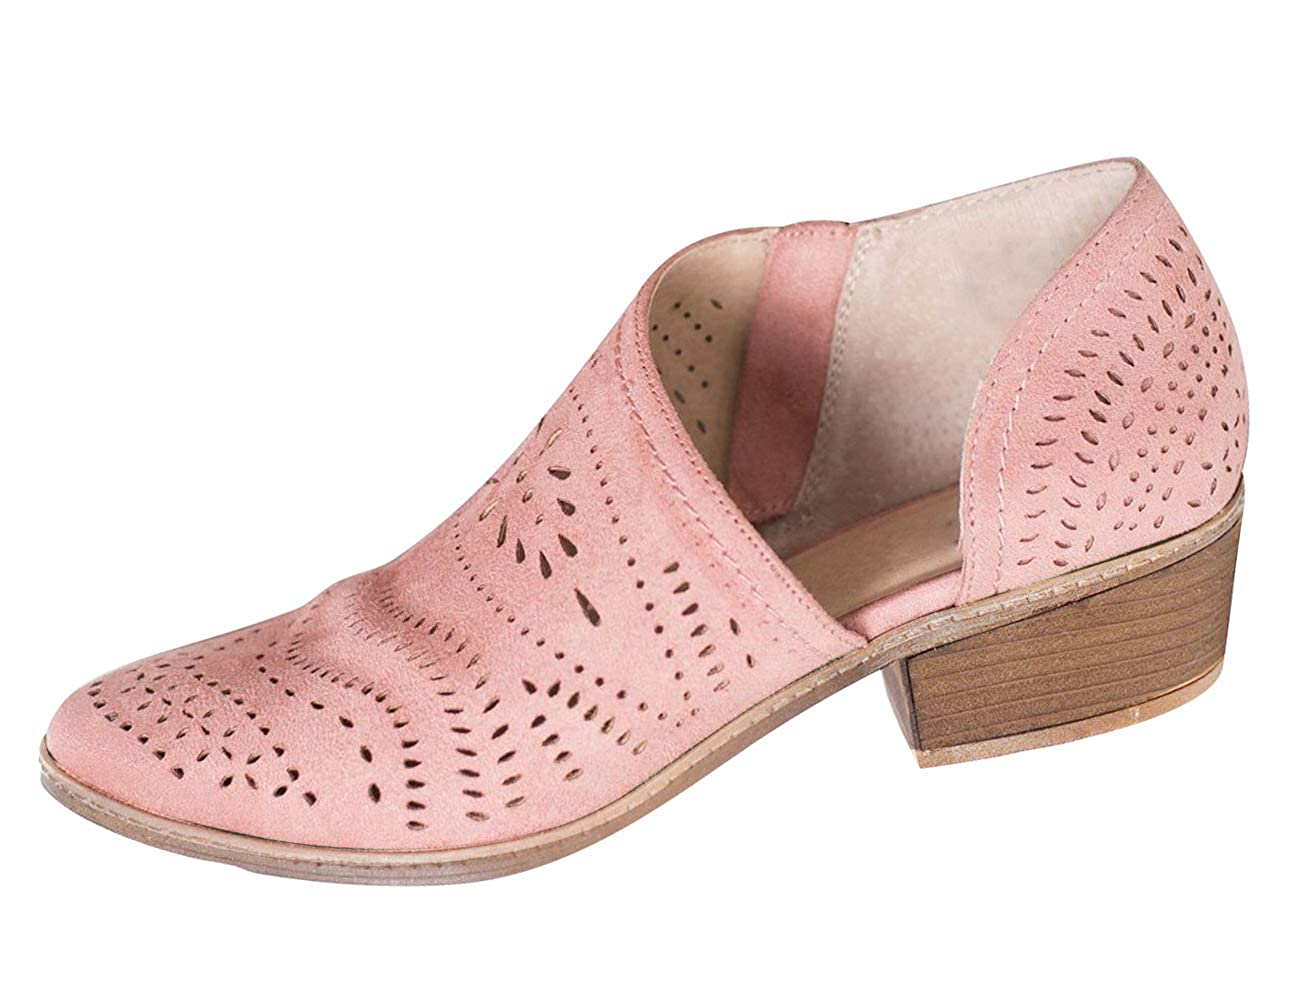 Pink XMWEALTHY Women's Ankle Boots Breathable Cut Out Side Zipper Slip On Loafers Platform shoes